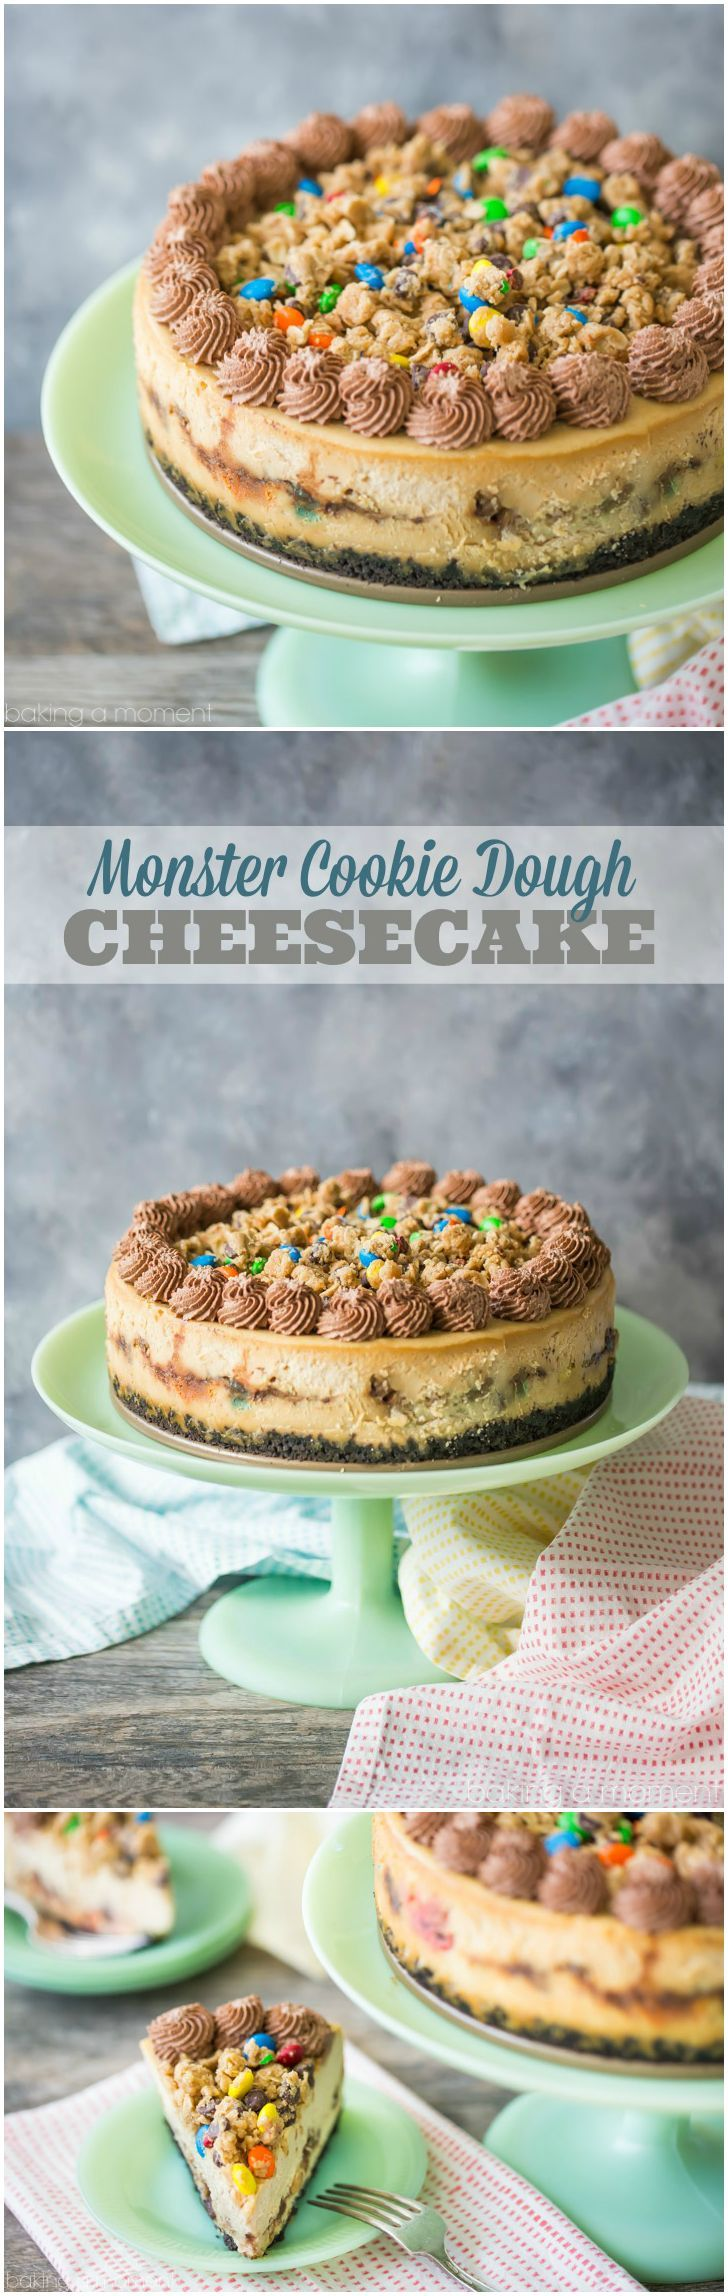 Monster Cookie Dough Cheesecake: OMG this dessert is completely over-the-top! Peanut butter cheesecake with hunks of peanut butter oatmeal m&m cookie dough, on an Oreo cookie crust, with more cookie dough on top and swirls of chocolate whipped cream. Such an incredible indulgence! #simplybeautifulhomemadecakes